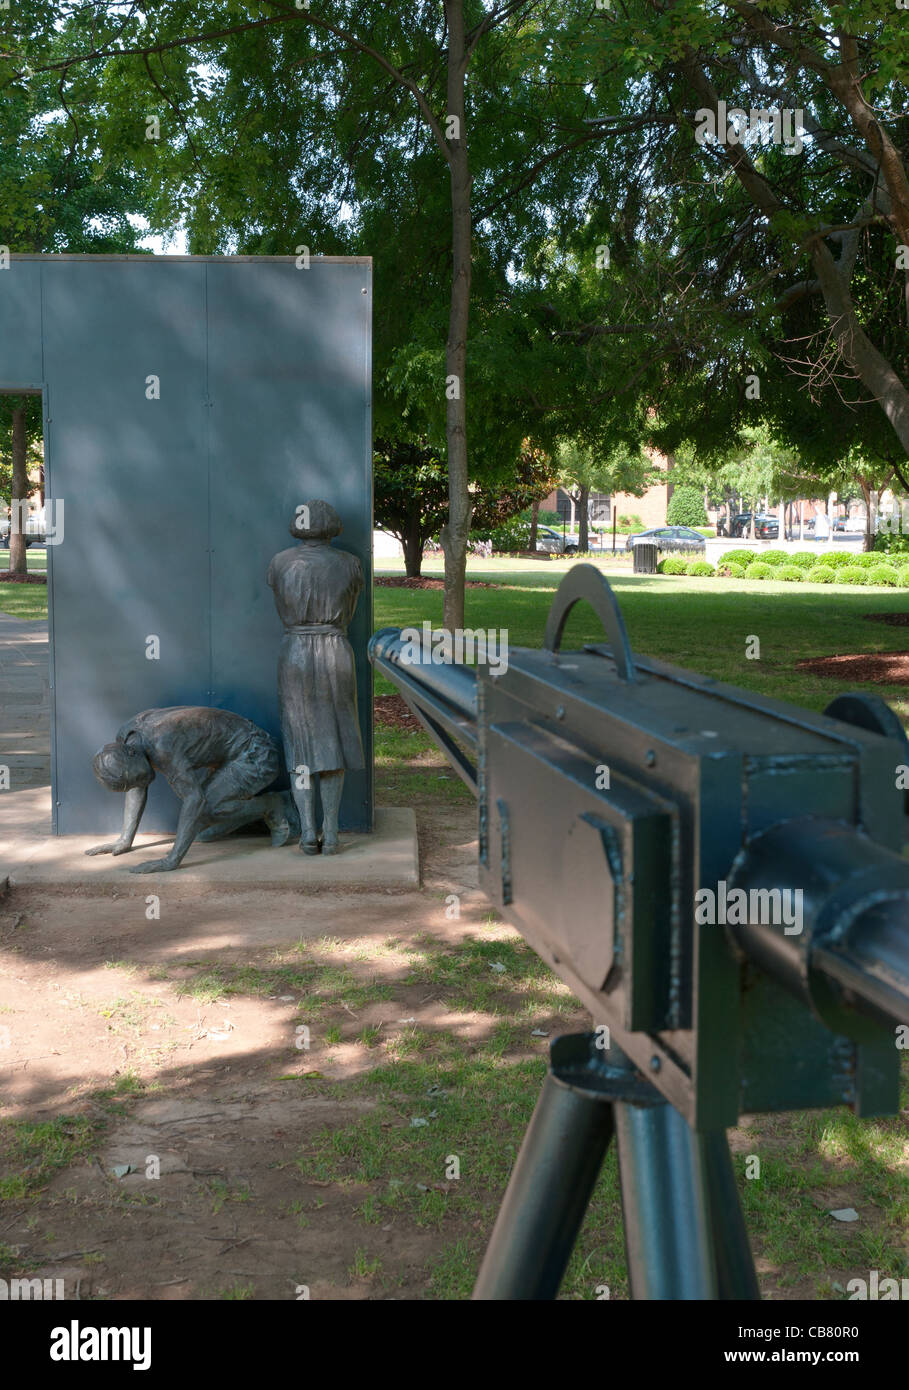 Alabama, Birmingham, Kelly Ingram Park, memorial statue to civil rights movement, water cannon aimed at demonstrators - Stock Image